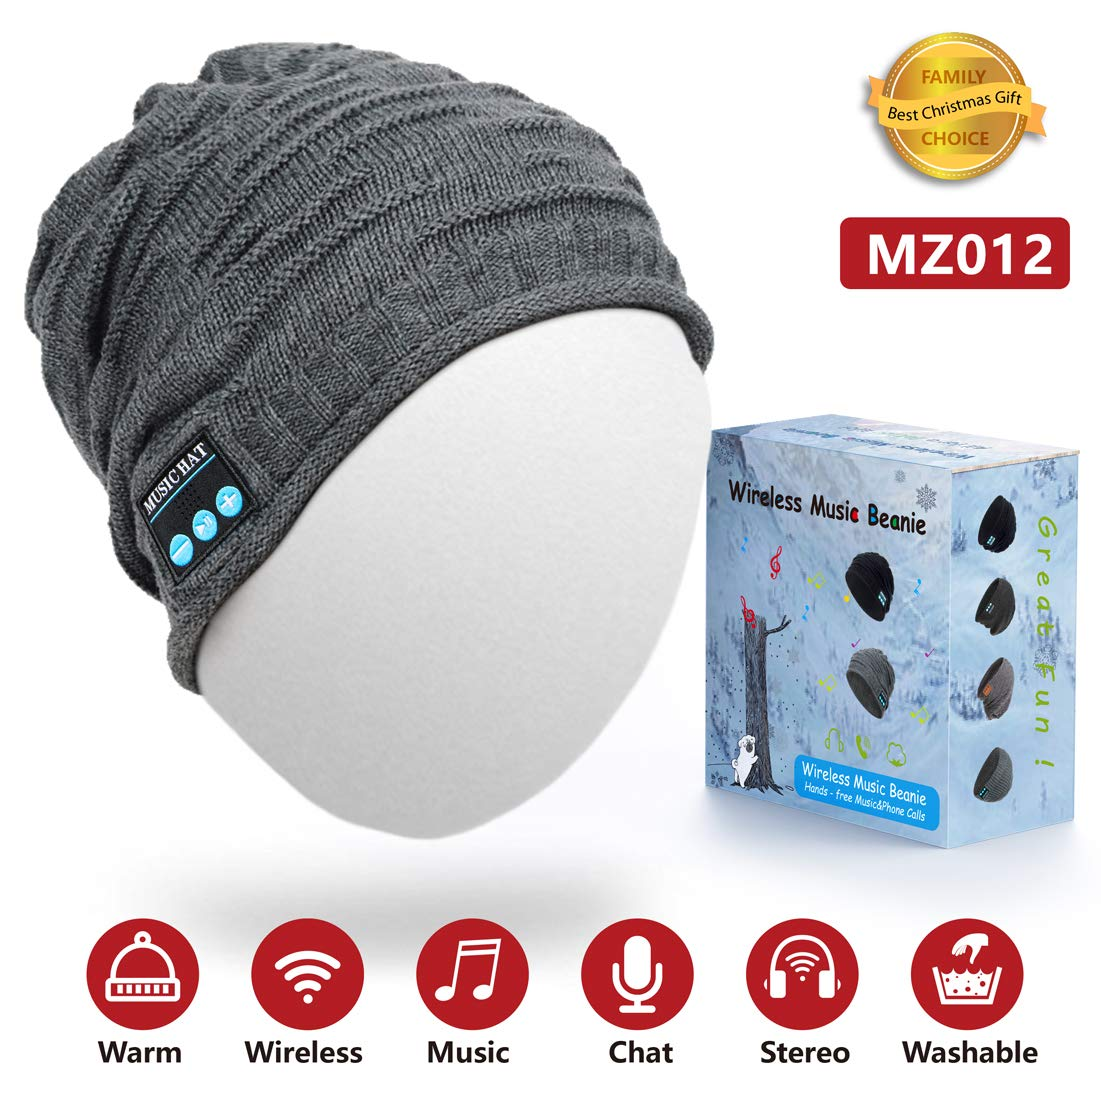 Novelty Bluetooth Knitted Cap Wireless Sport Headset Hat Call Music Stereo Headphone Caps Colorful Hats For Christmas Gift Consumer Electronics